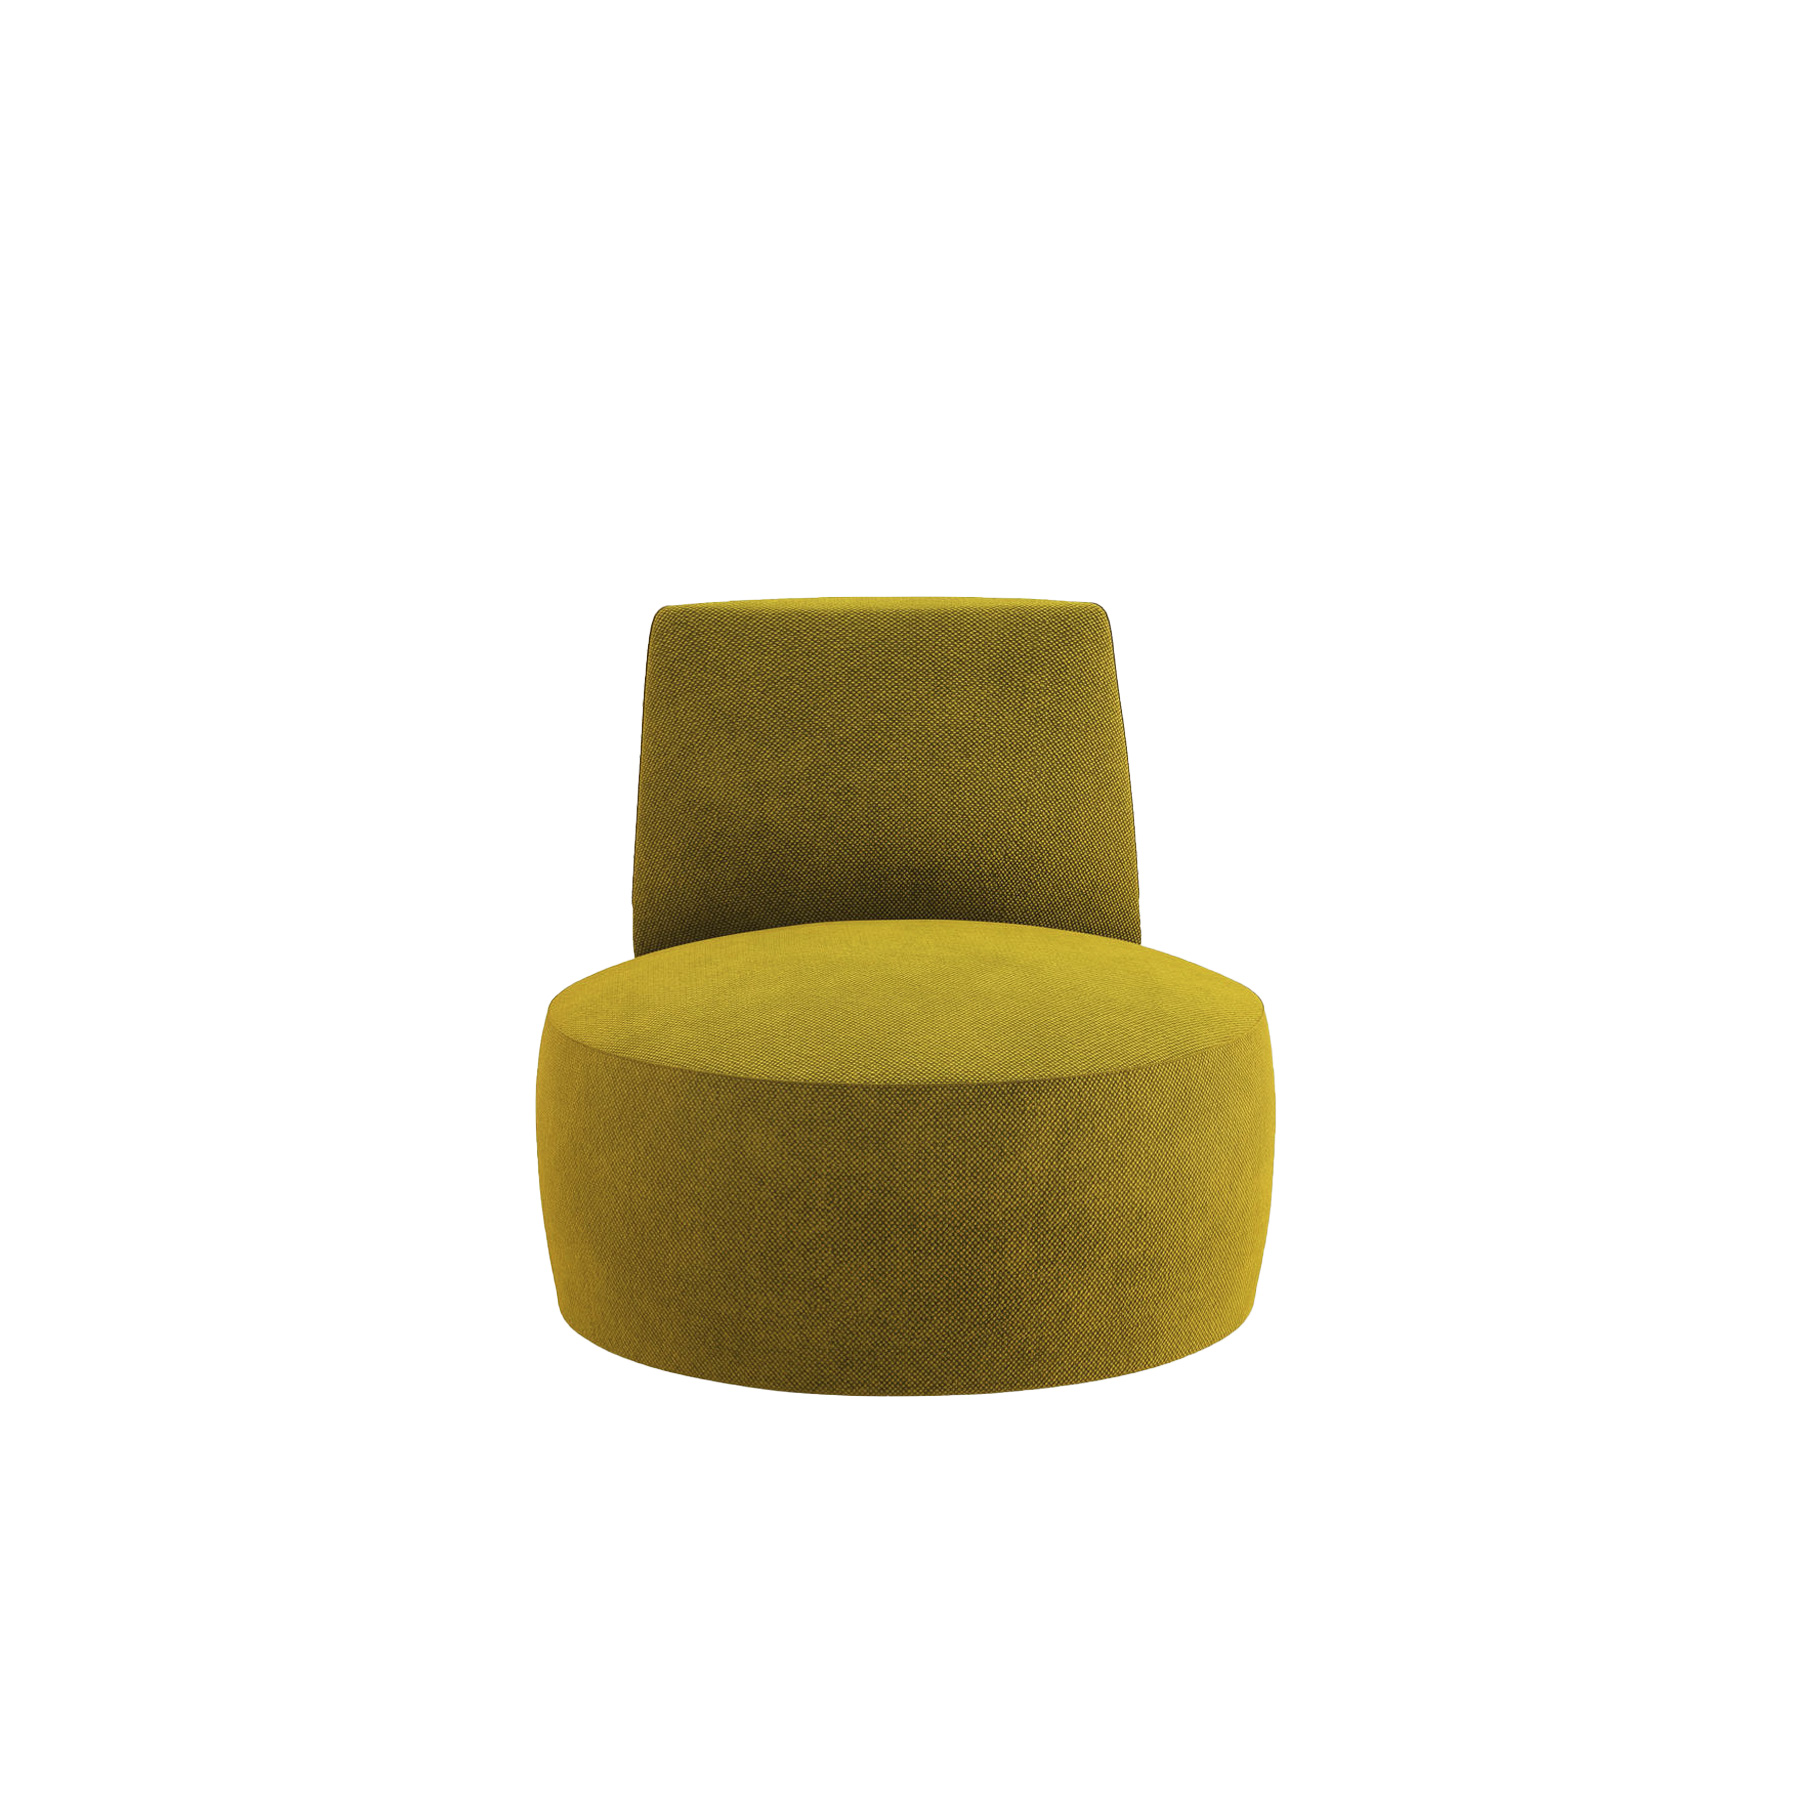 Baobab Lounge Chair - Baobab is characterised by the contrast of the full rounded form of the seat with the fine and elegant profile of the back.‎ The result, quite apart from its unique personality is a very pleasing, comfortable and eye-catching piece.‎ Baobab has built-in wheels.